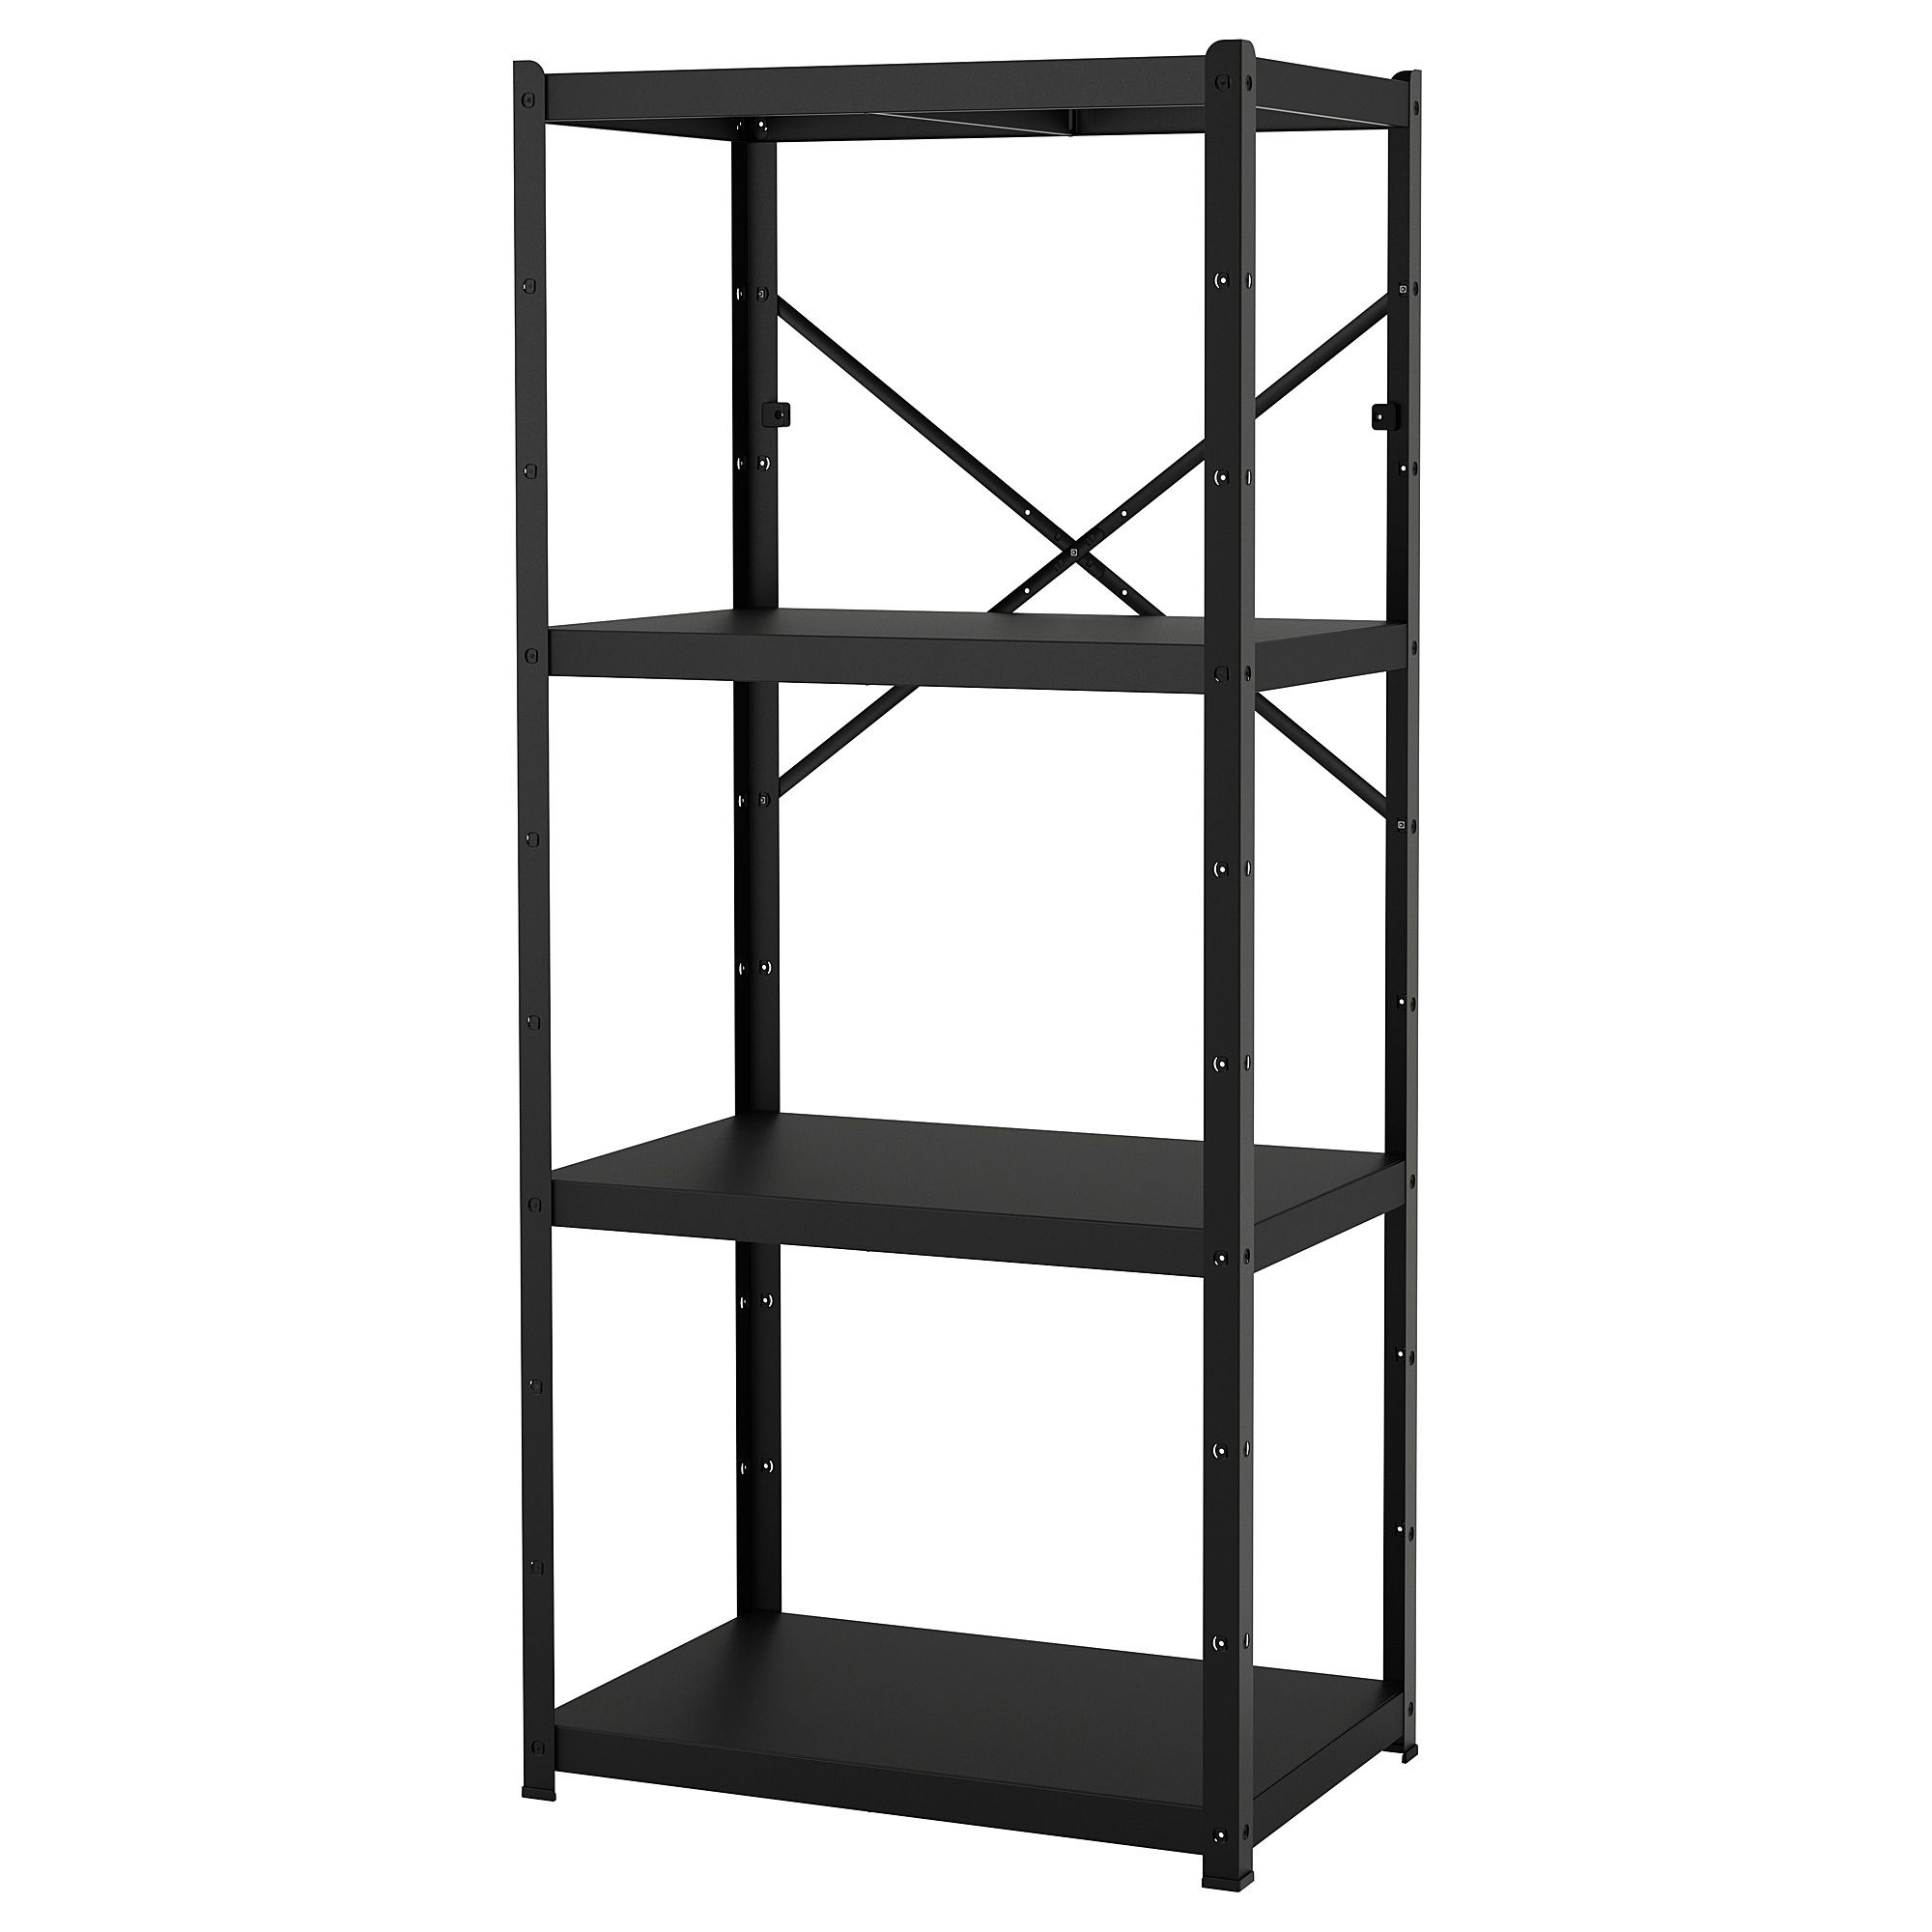 Regal Schwarz Bror Regal Schwarz In 2019 Products Pinterest Storage